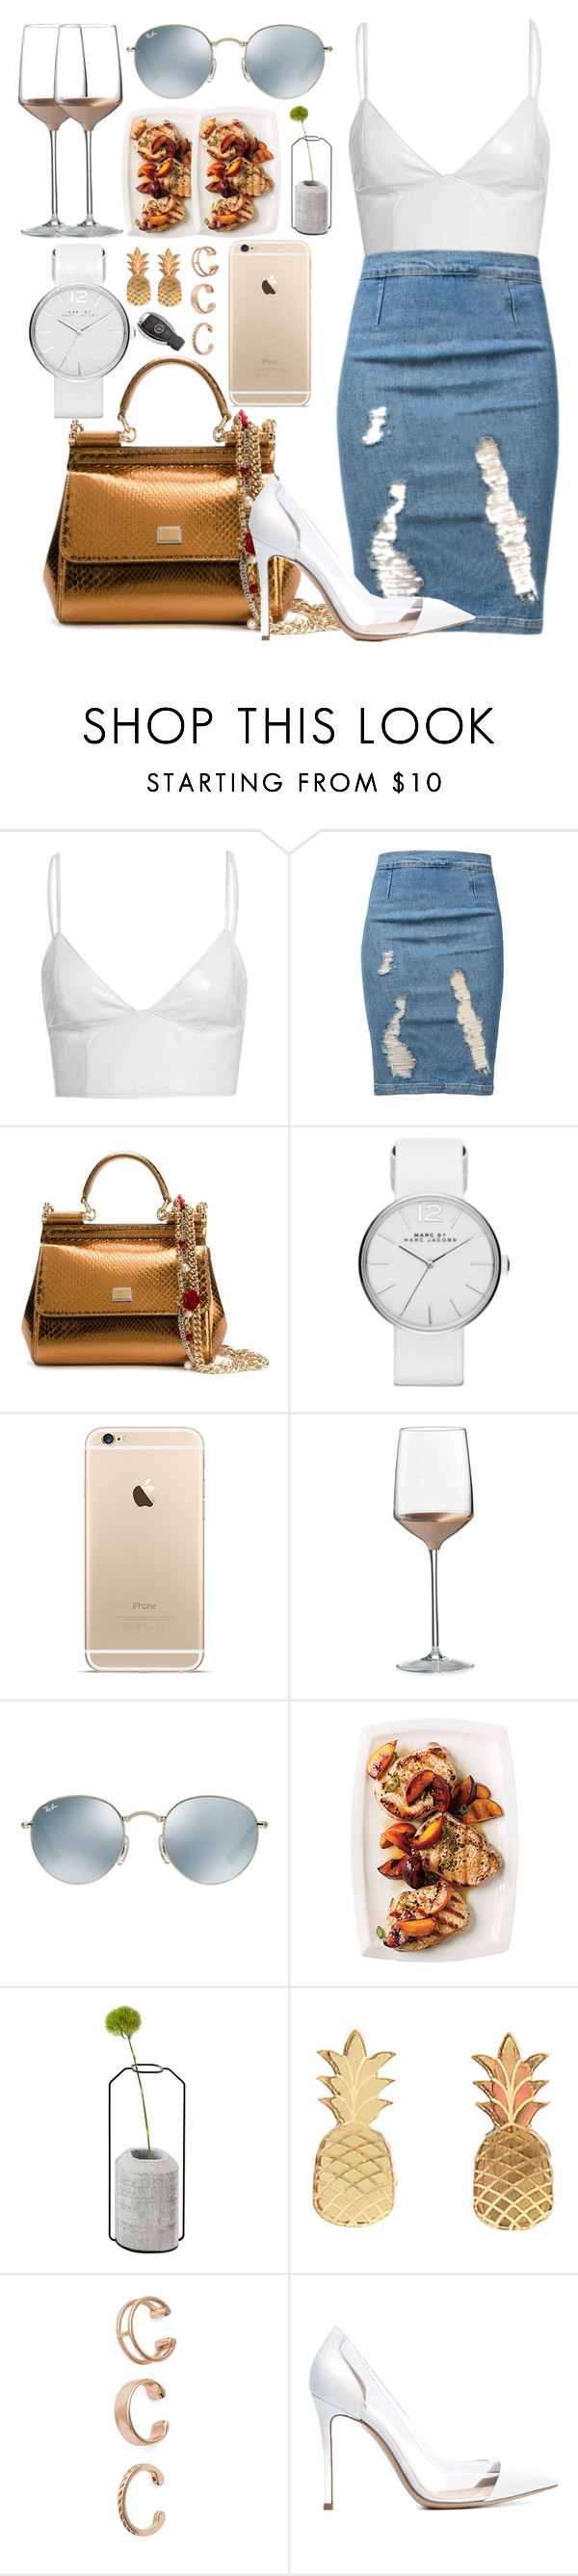 """""""*1161"""" by asoc10 ❤ liked on Polyvore featuring Frame Denim, Dolce&Gabbana, Marc by Marc Jacobs, Wedgwood, Ray-Ban, Spécimen Editions, Vinca, Kendra Scott, Gianvito Rossi and FamilyDay"""